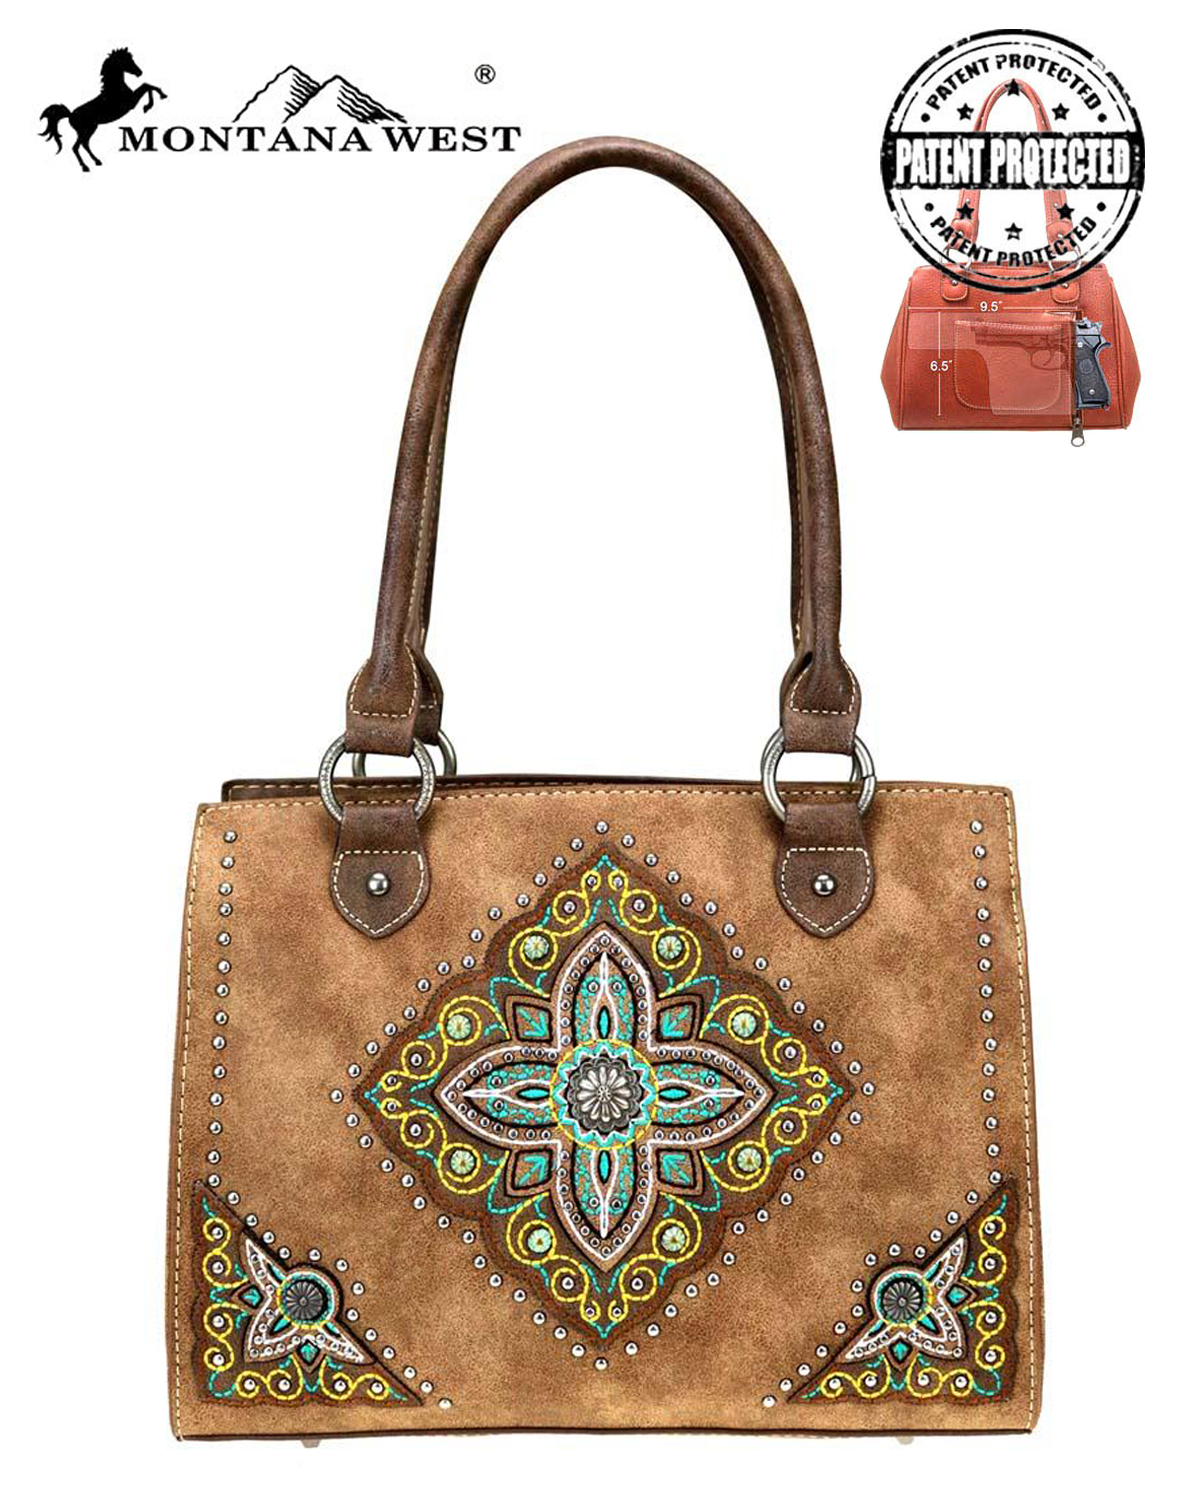 MW715G8250(BR)-MW-wholesale-handbag-montana-west-concealed-aztec-tribal-floral-embroidered-concho-rhinestone-stud(0).jpg